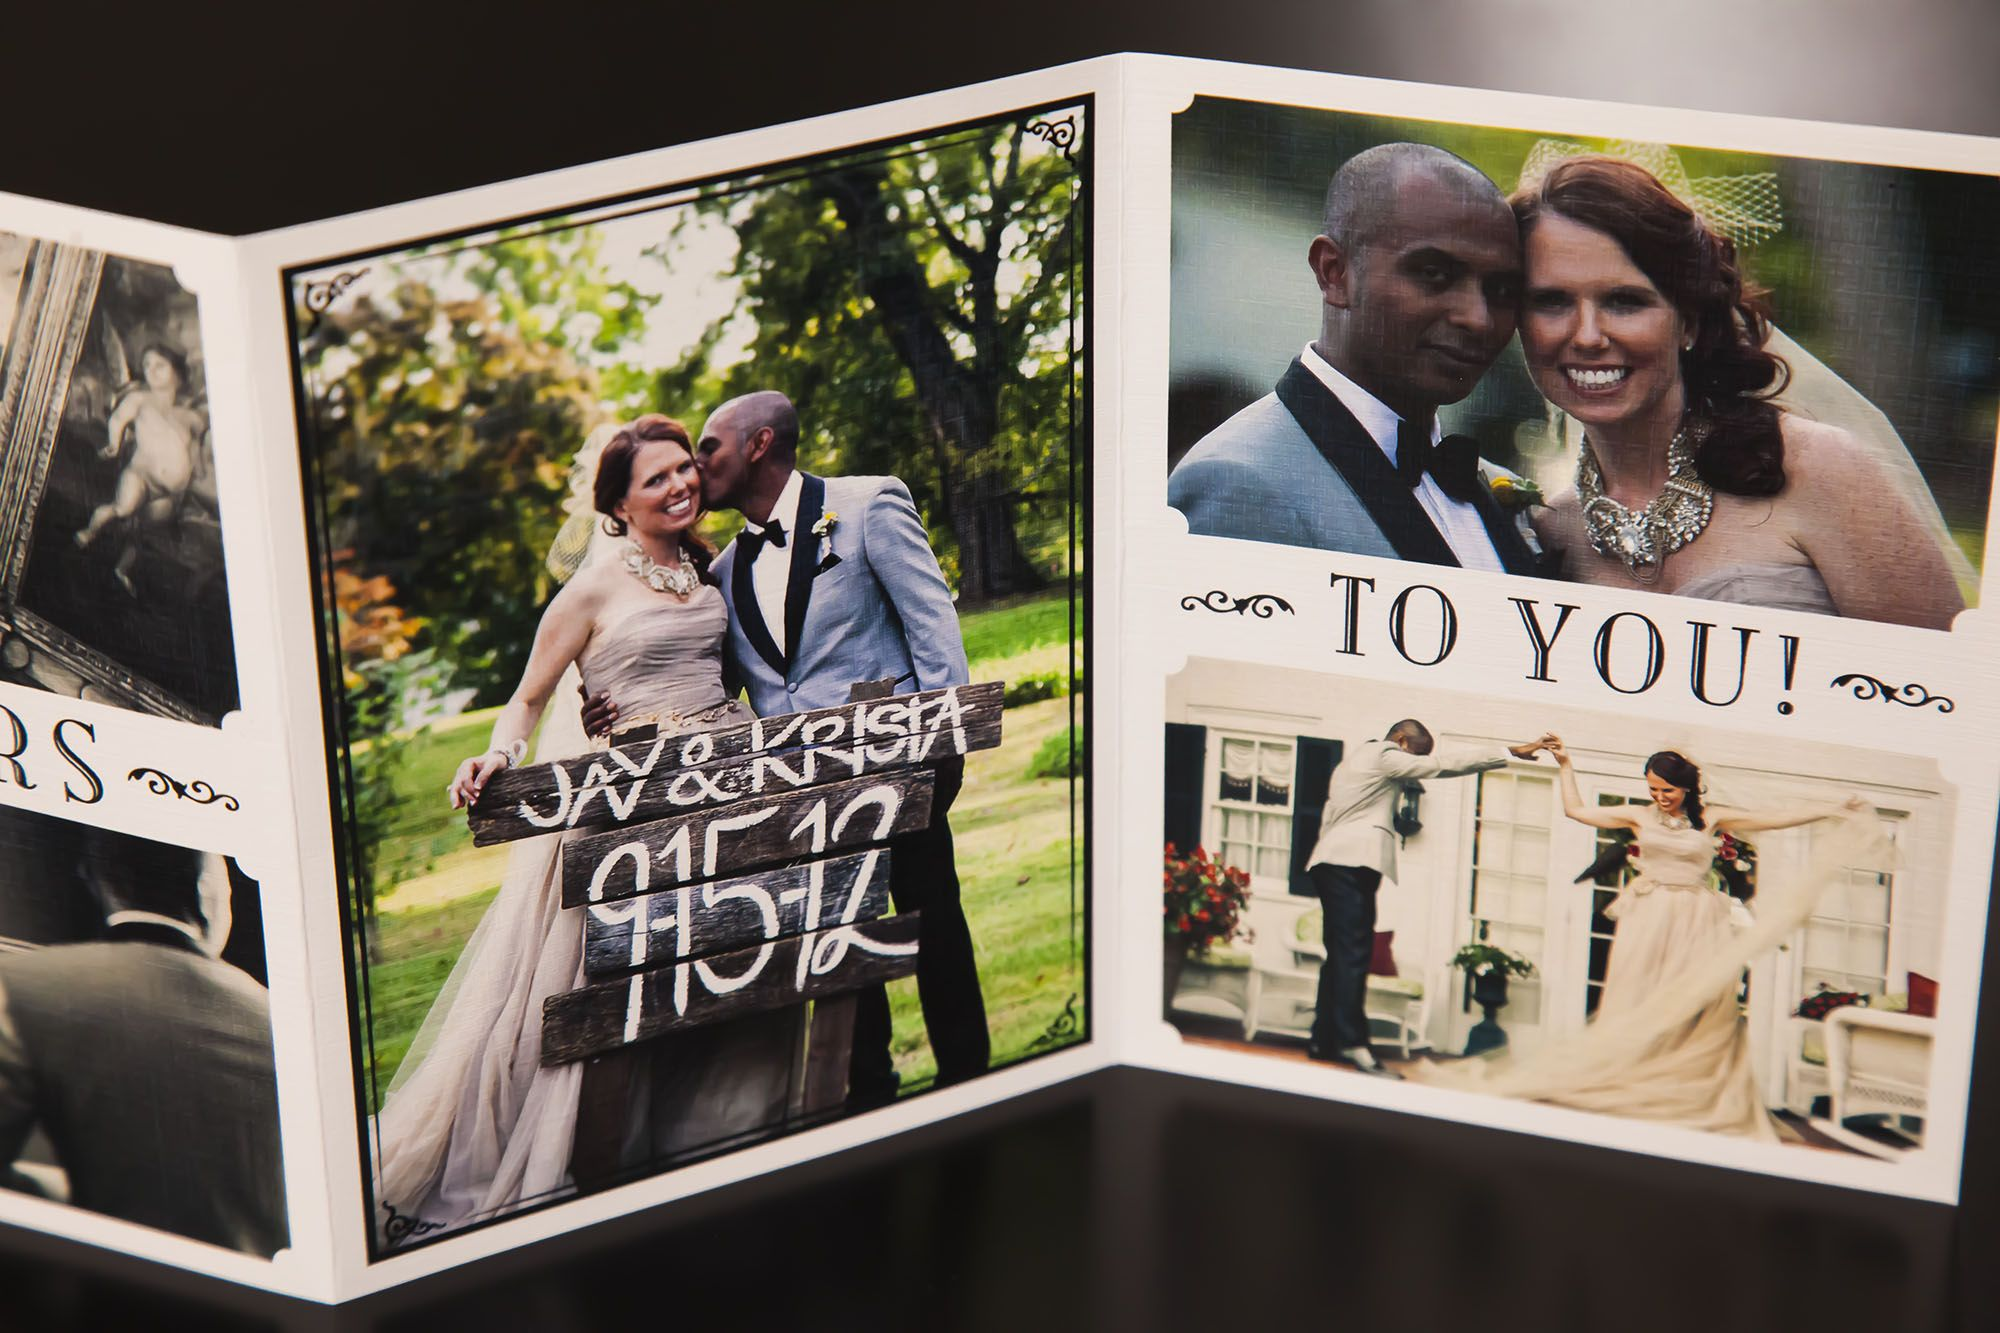 17 Best images about Wedding Thank You Cards on Pinterest ...